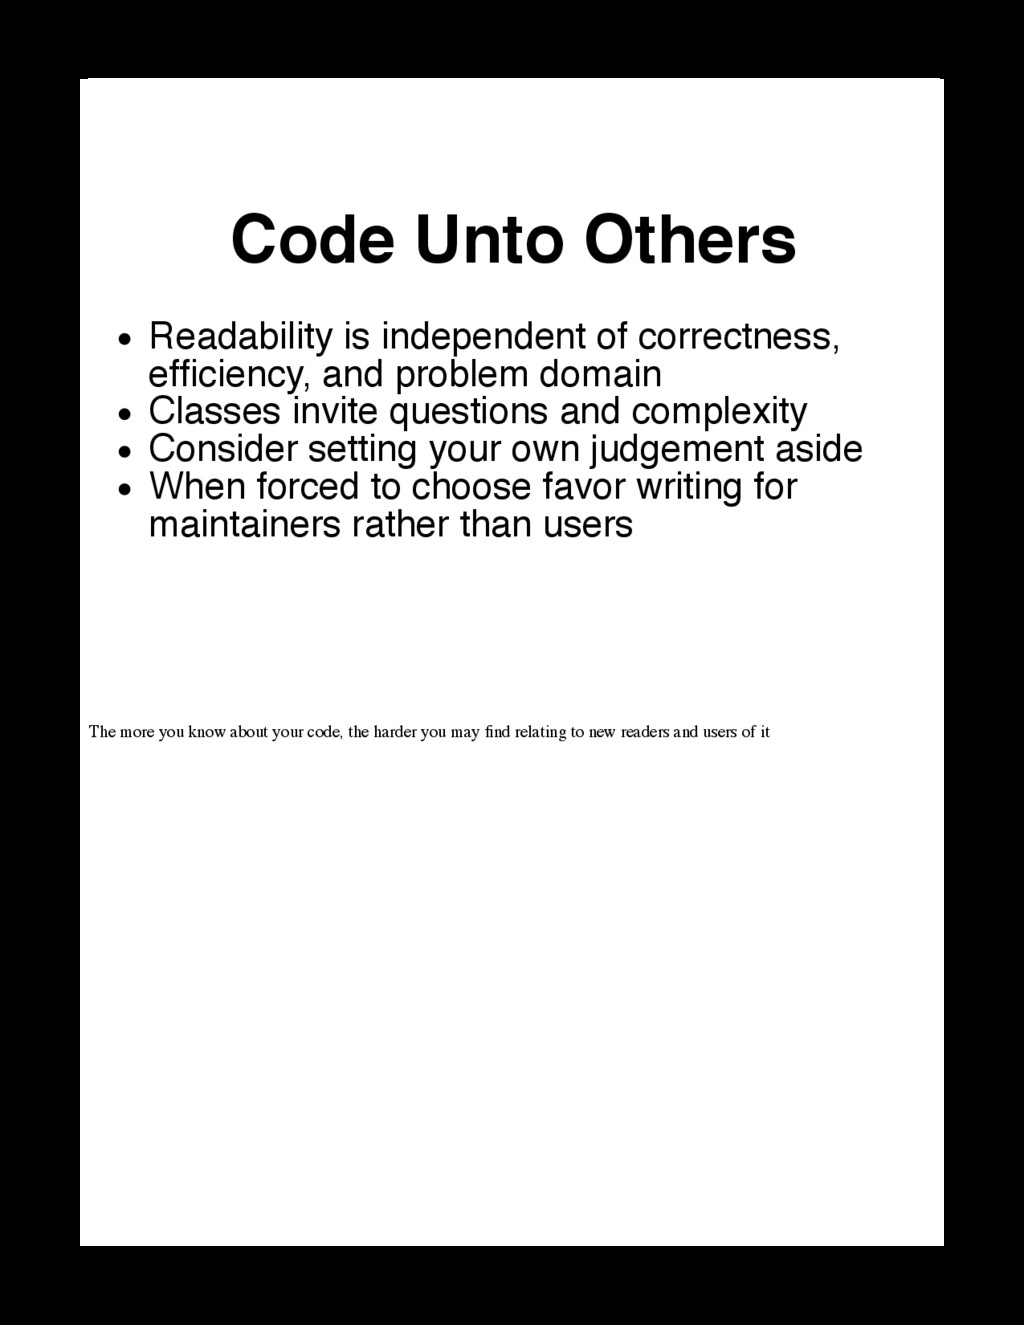 The more you know about your code, the harder y...